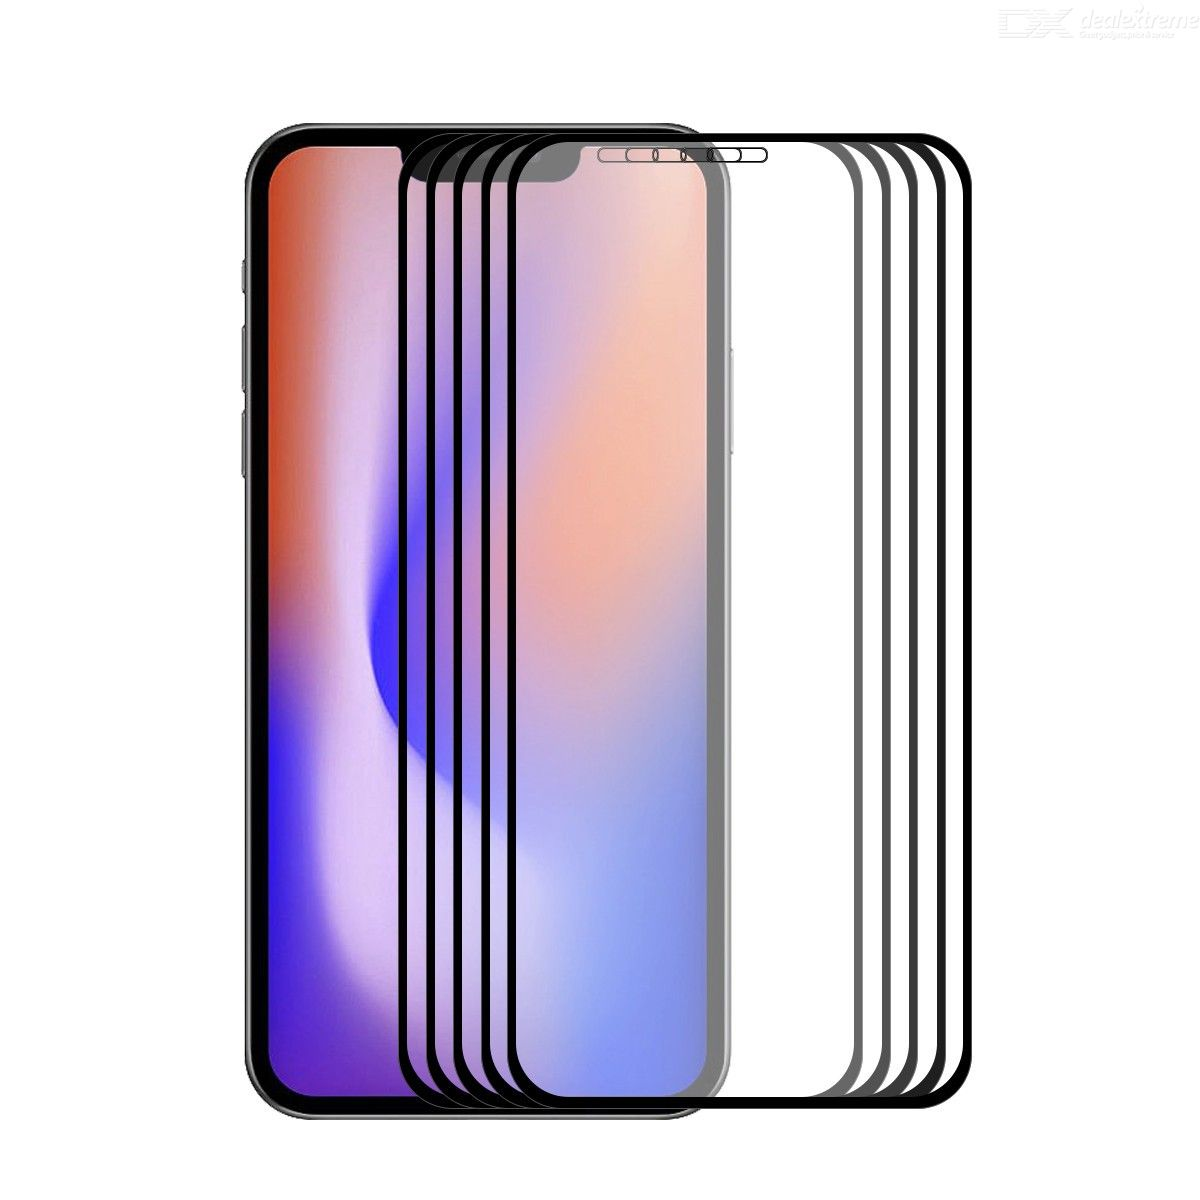 5 PCS ENKAY Hat-Prince Full Glue For iPhone 12 Pro / 12 Max 6.1 0.26mm 9H 2.5D Tempered Glass Full Coverage Film